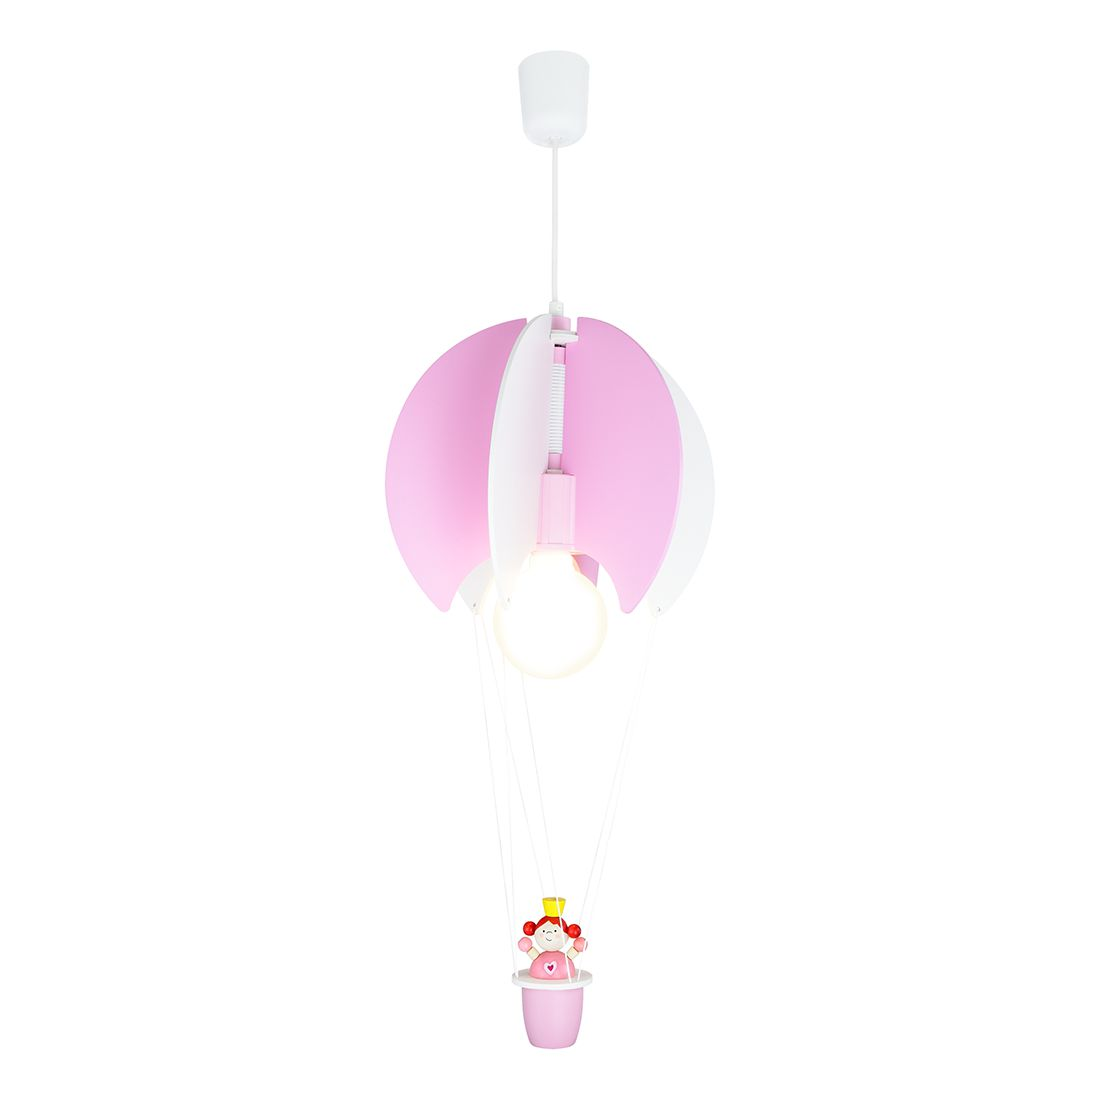 Suspension Ballon et princesse